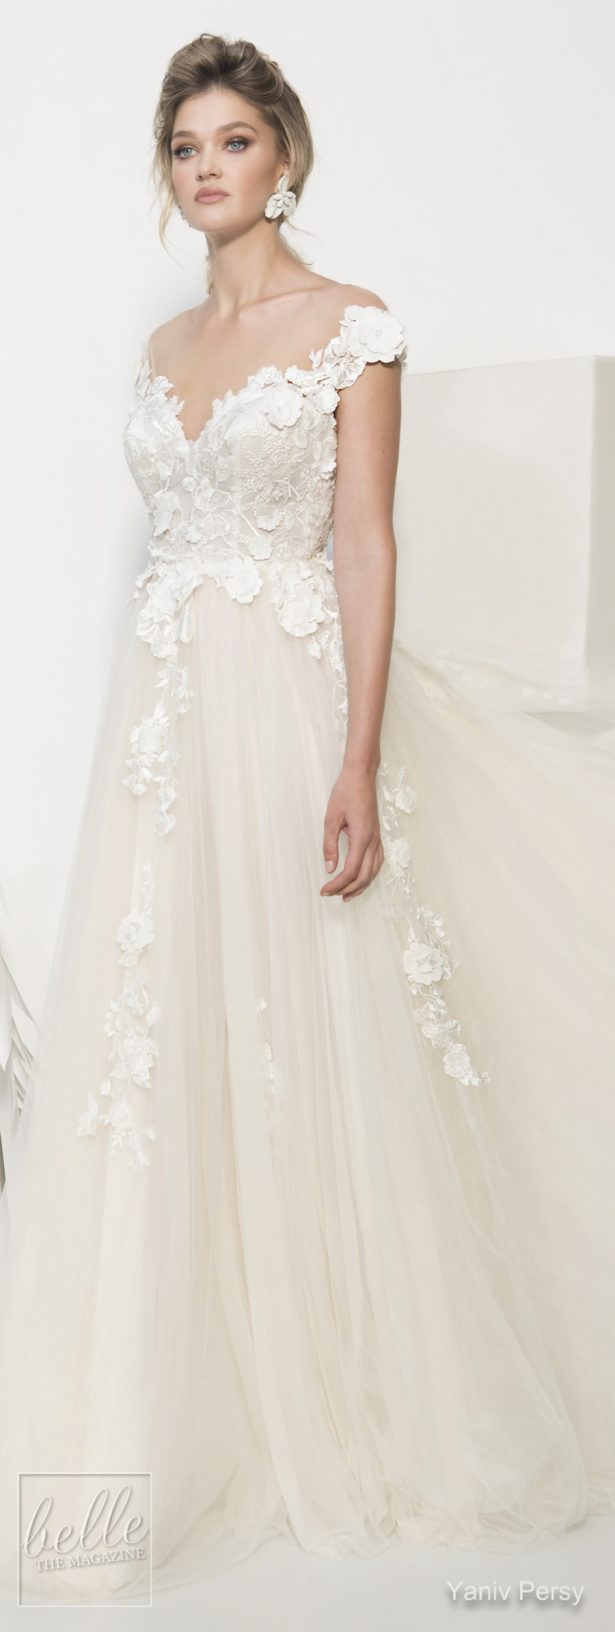 Yaniv Persy Wedding Dresses Spring 2019 - Couture Bridal Collection